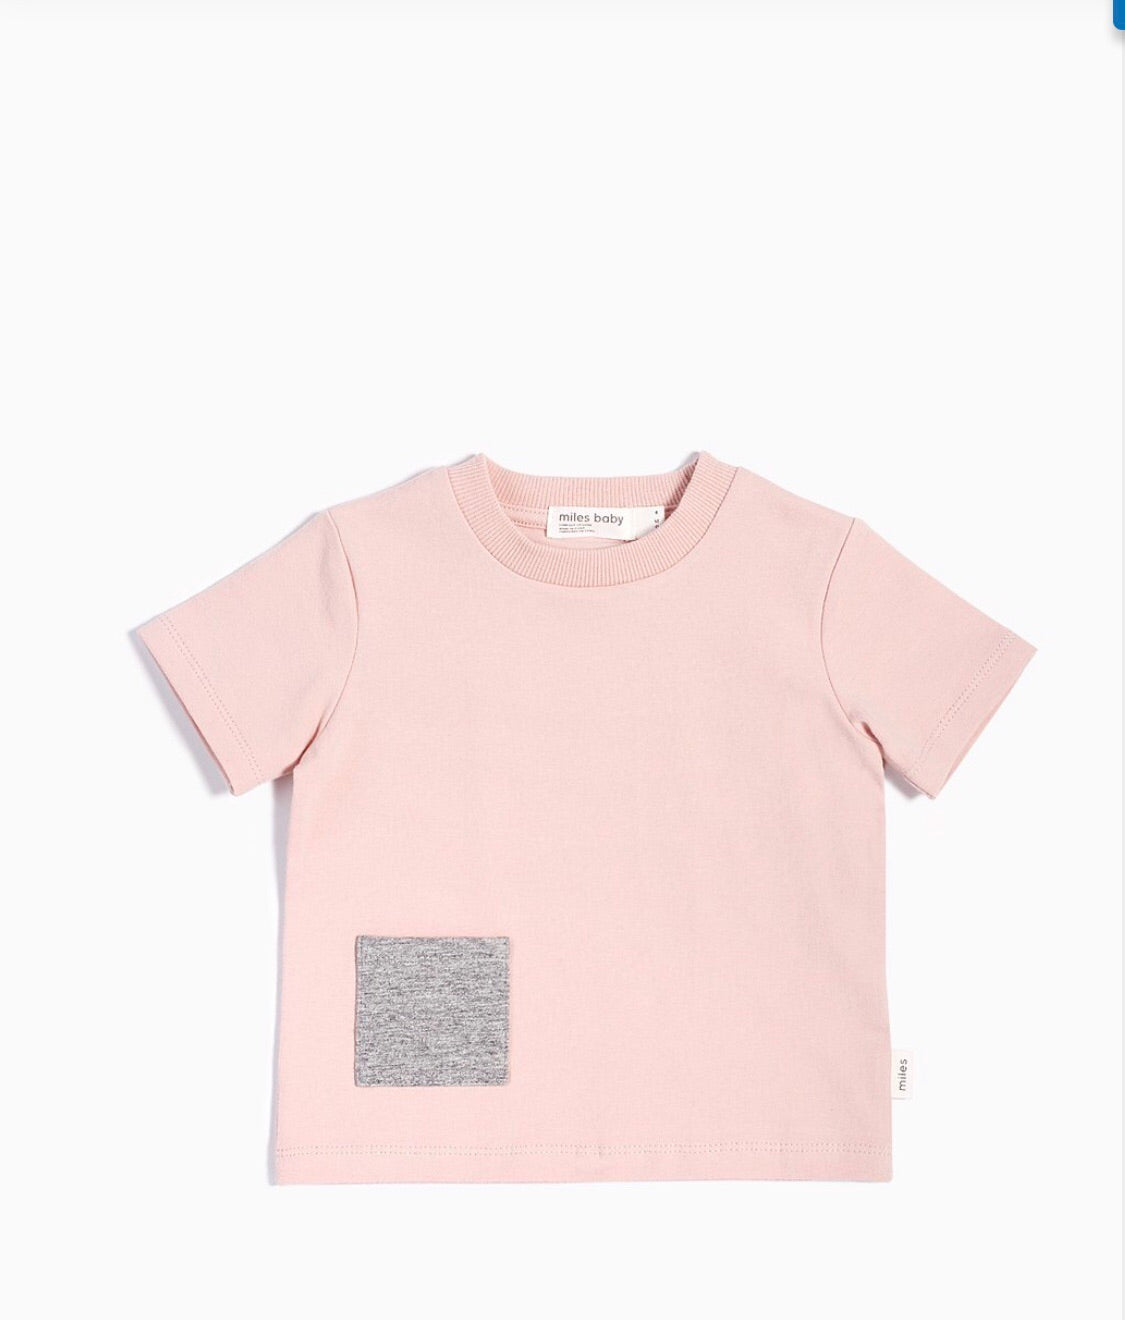 """MILES BASIC"" LIGHT PINK T-SHIRT WITH CONTRASTING PATCH POCKET - Camila New York"